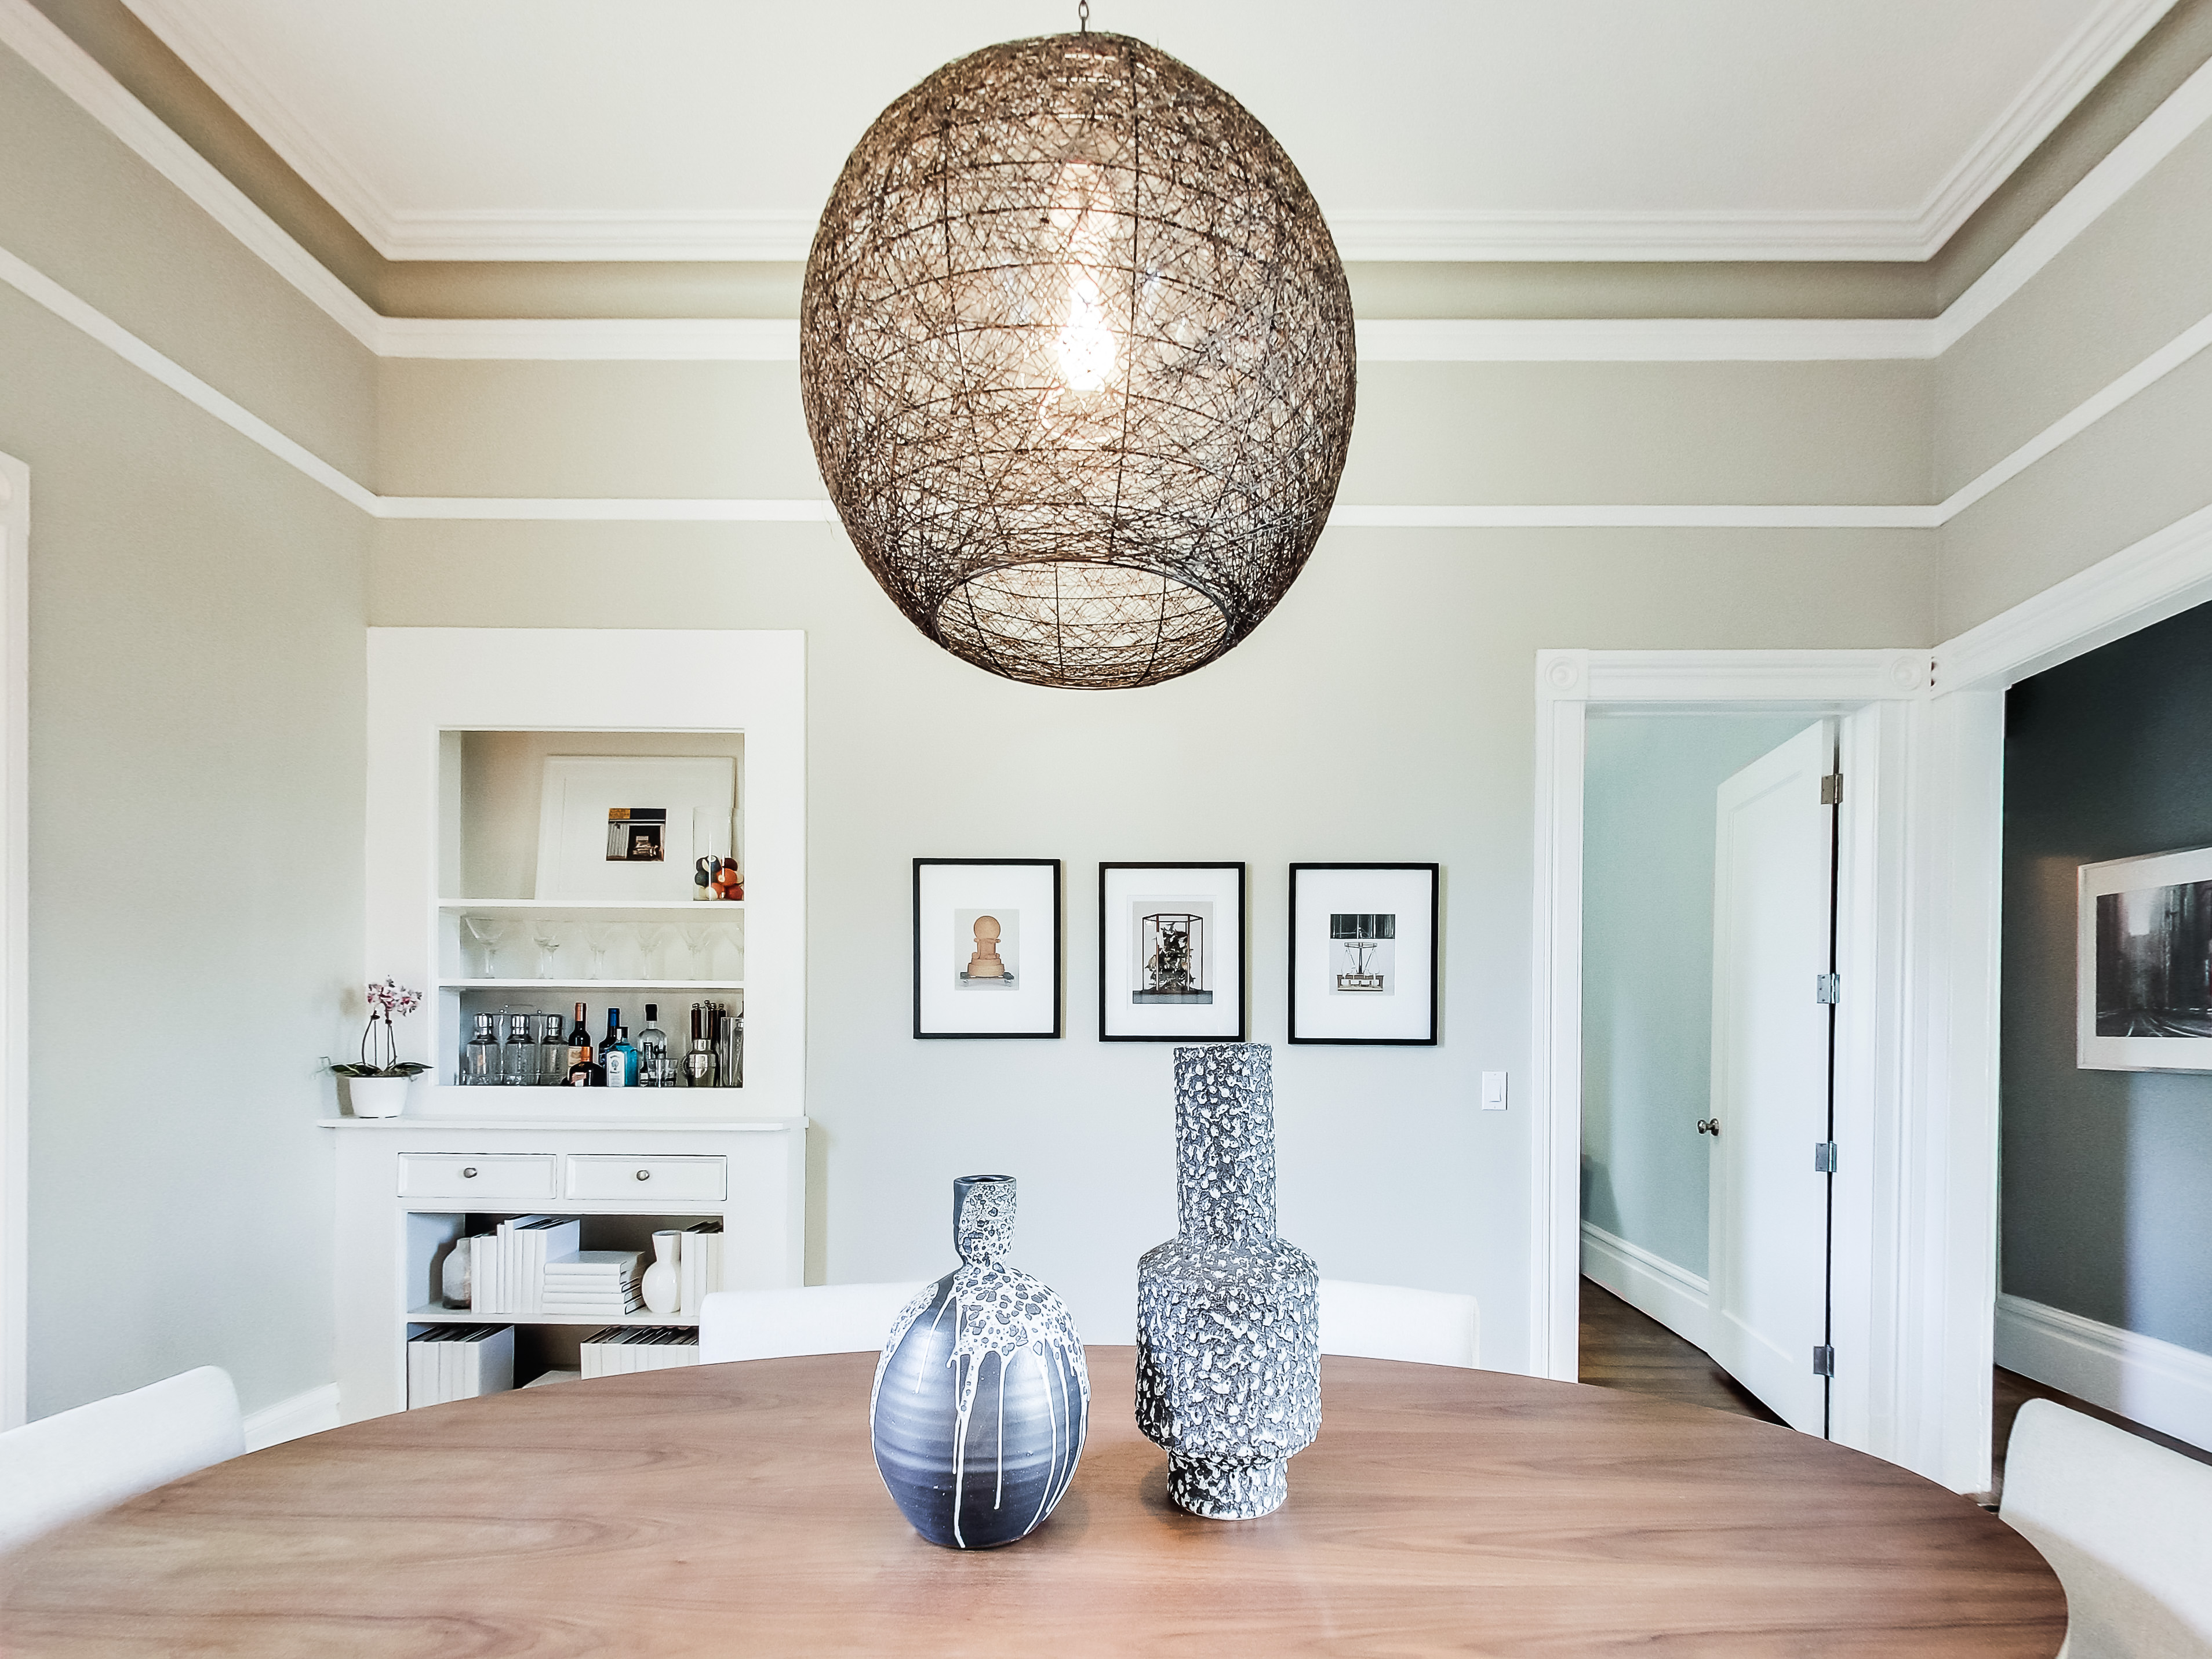 For Sale | 2154 A Market St. | Duboce Triangle | $1,295,000